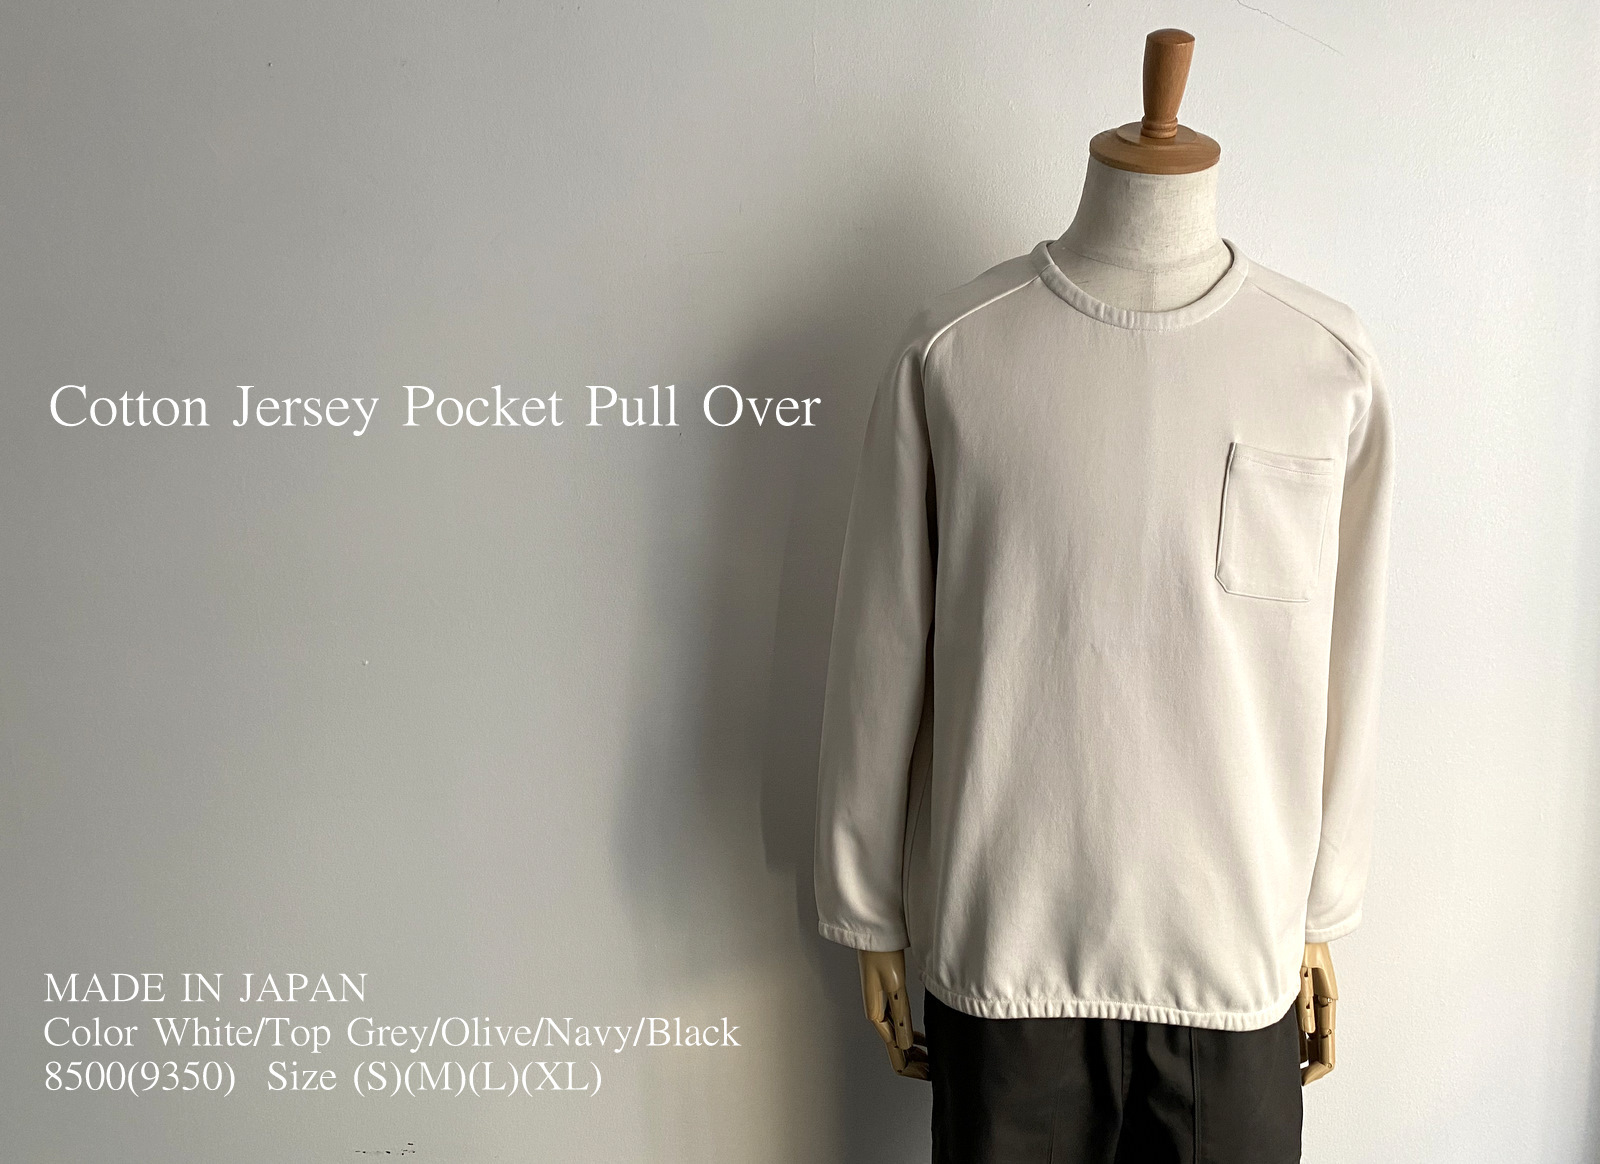 Cotton Jersey Pocket Pull Over_c0379477_22164922.jpg